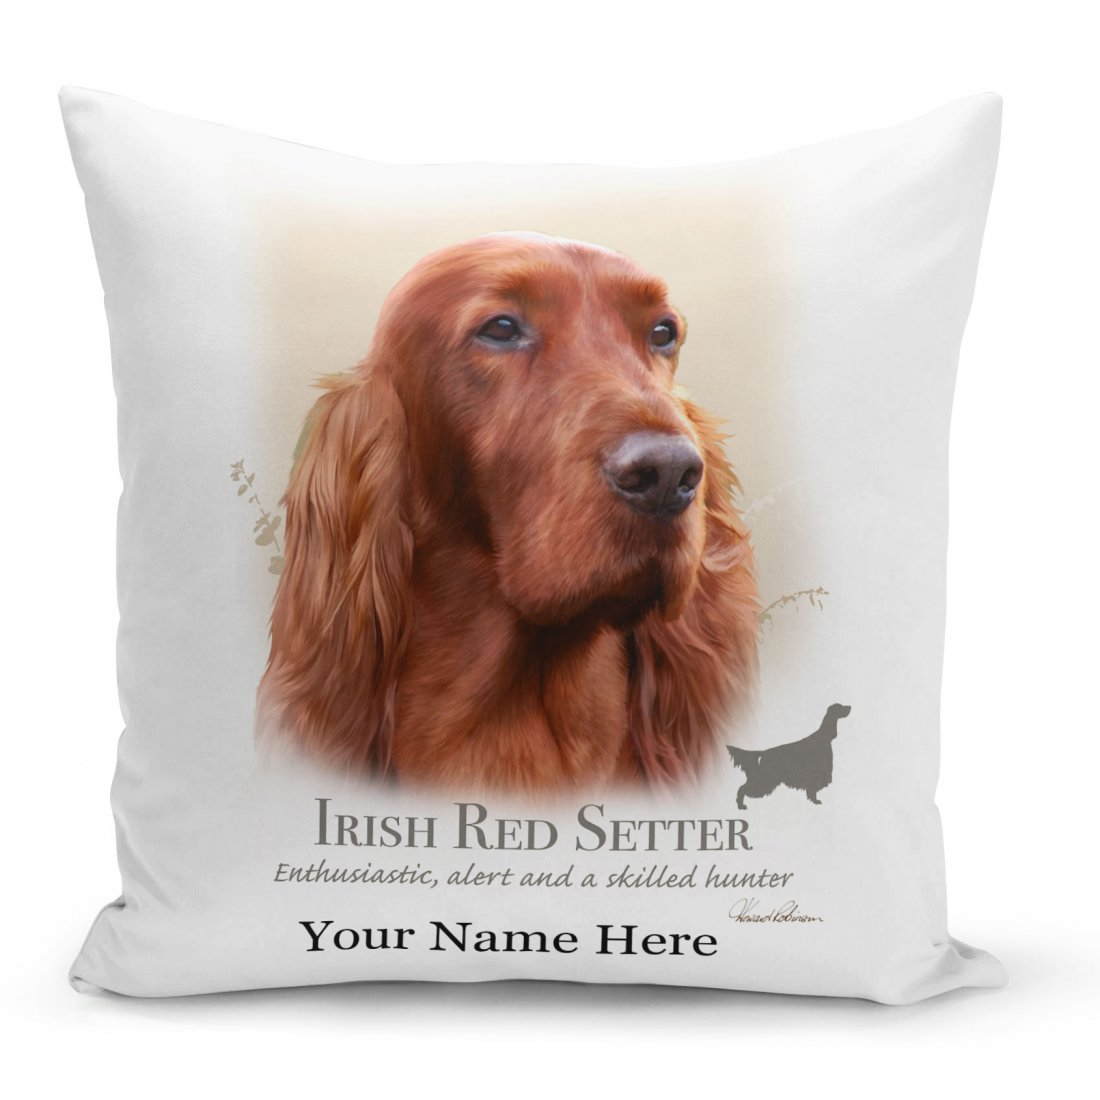 Irish Red Setter Dog Cushion